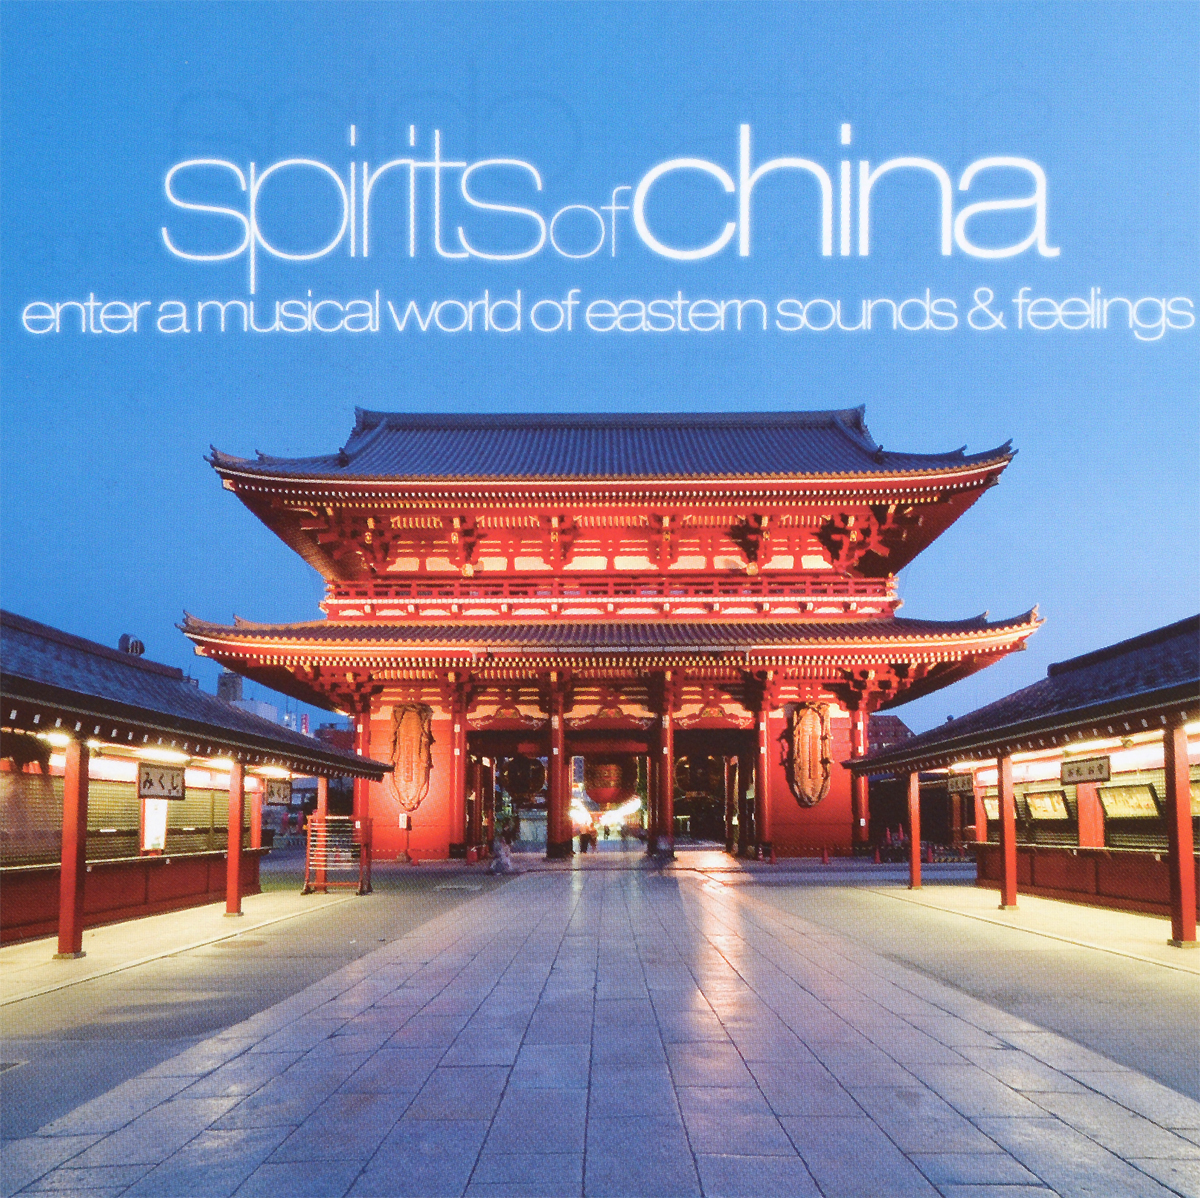 Spirits Of China. Enter A Musical World Of Easten Sounds & Feelings